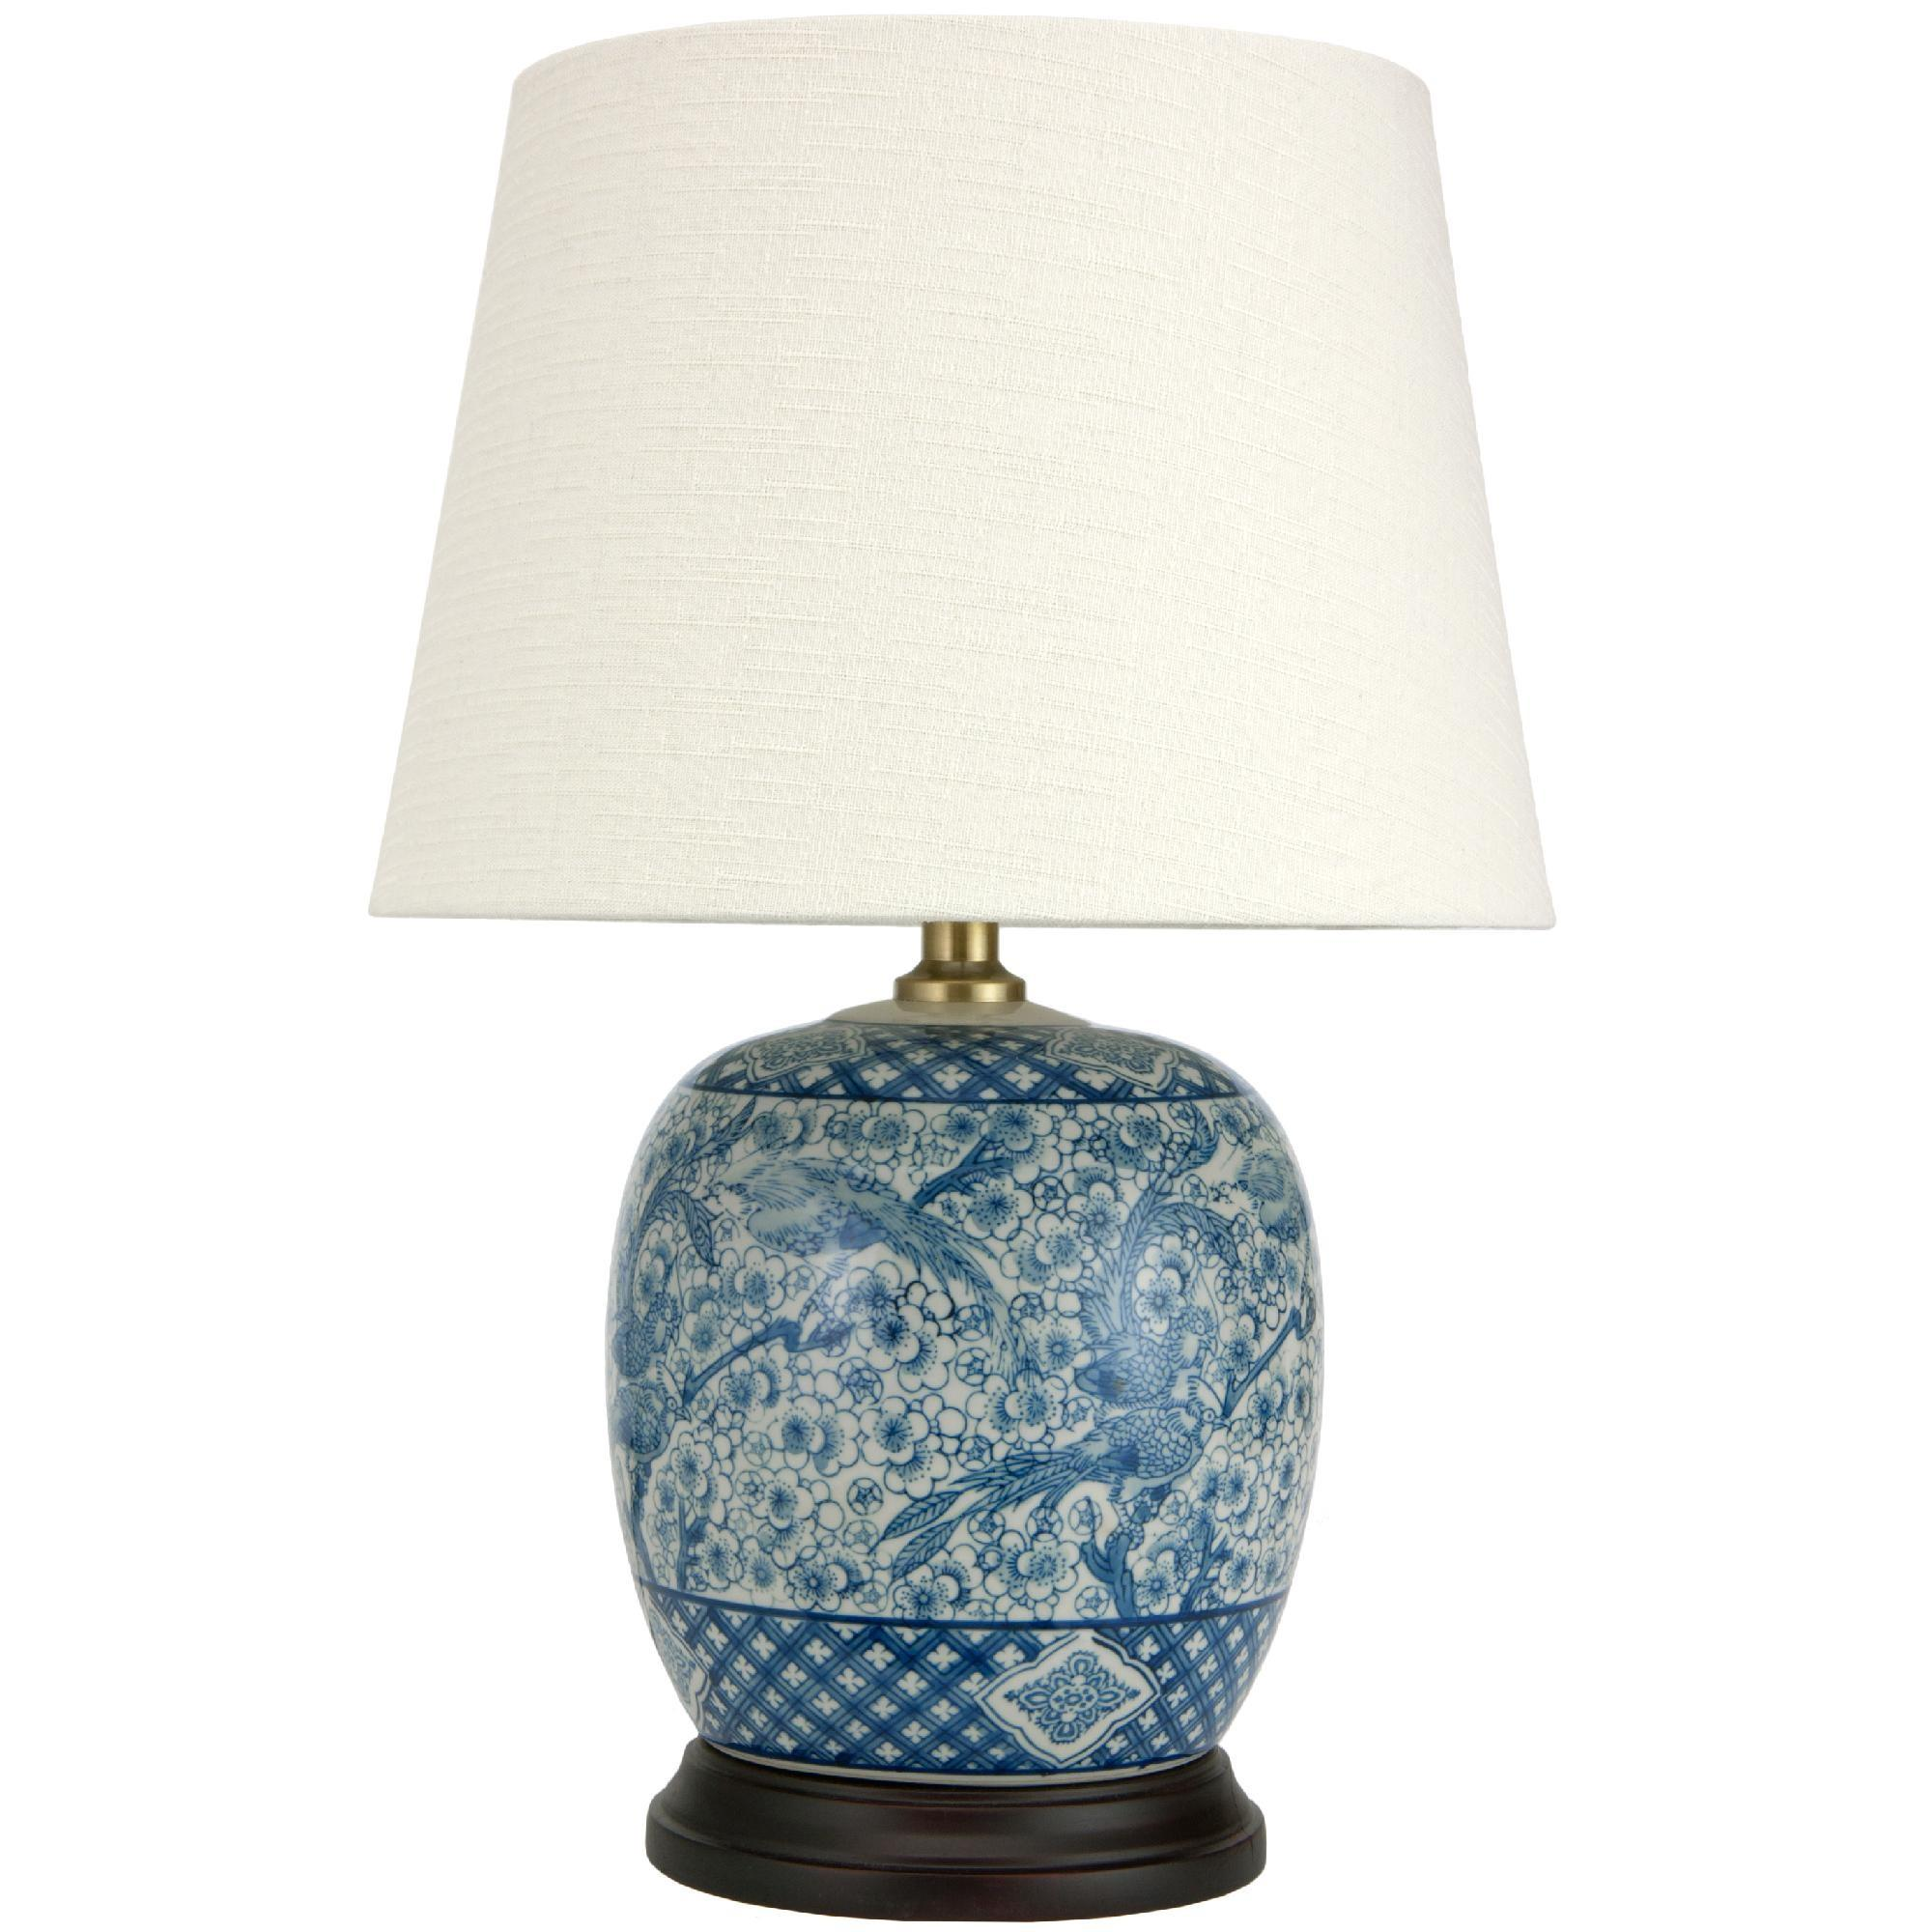 Oriental Furniture Blue White Porcelain Round Vase Lamp